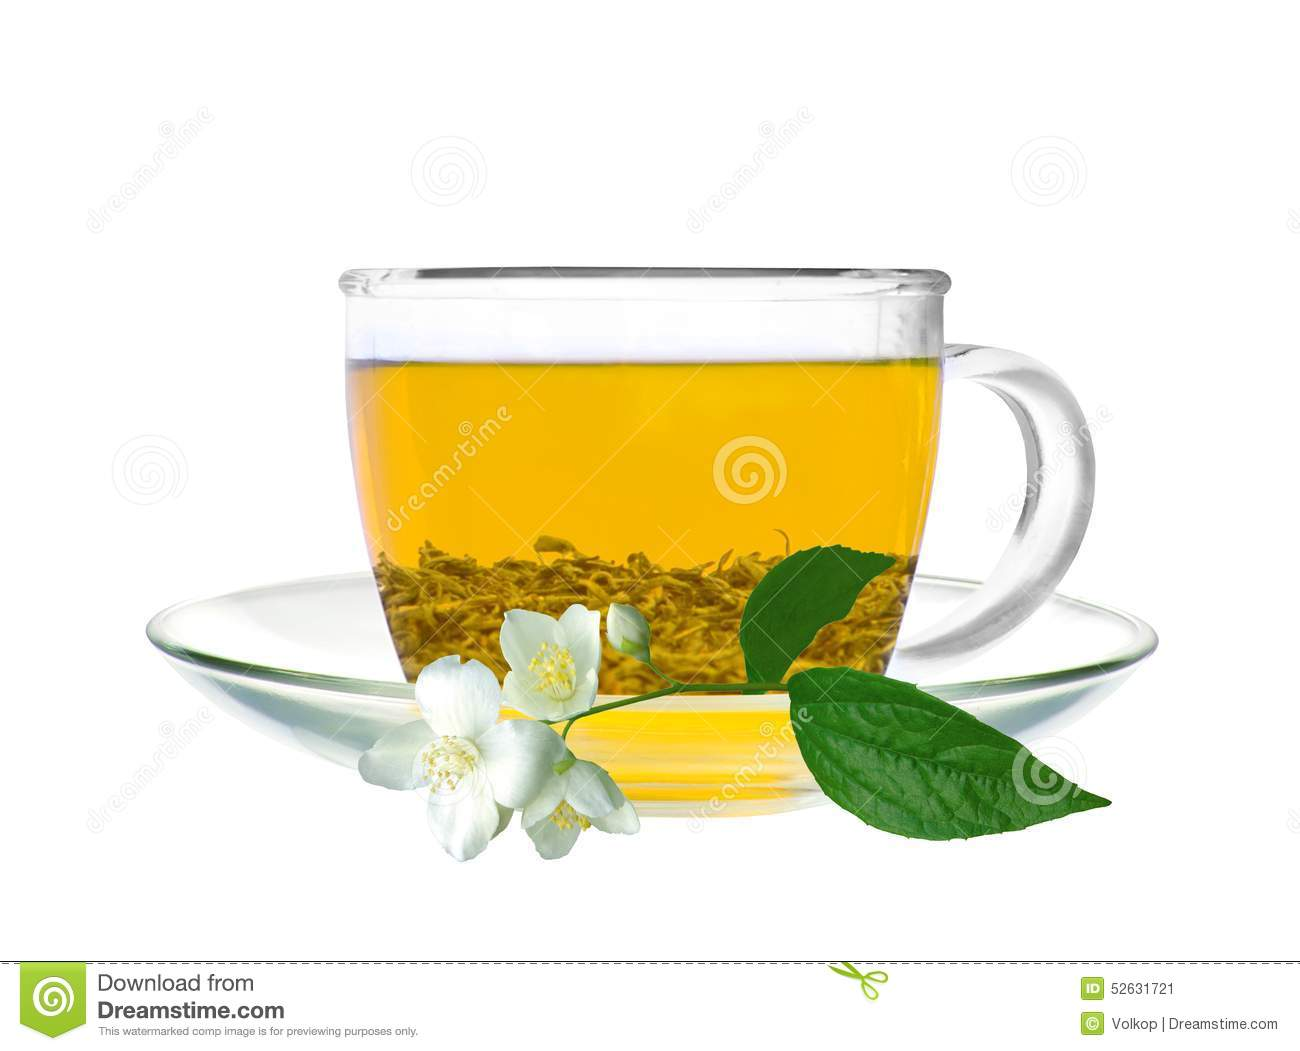 Jasmine flower green tea gallery flower wallpaper hd transparent cup of green tea and jasmine flower isolated stock image transparent cup of green tea izmirmasajfo Images